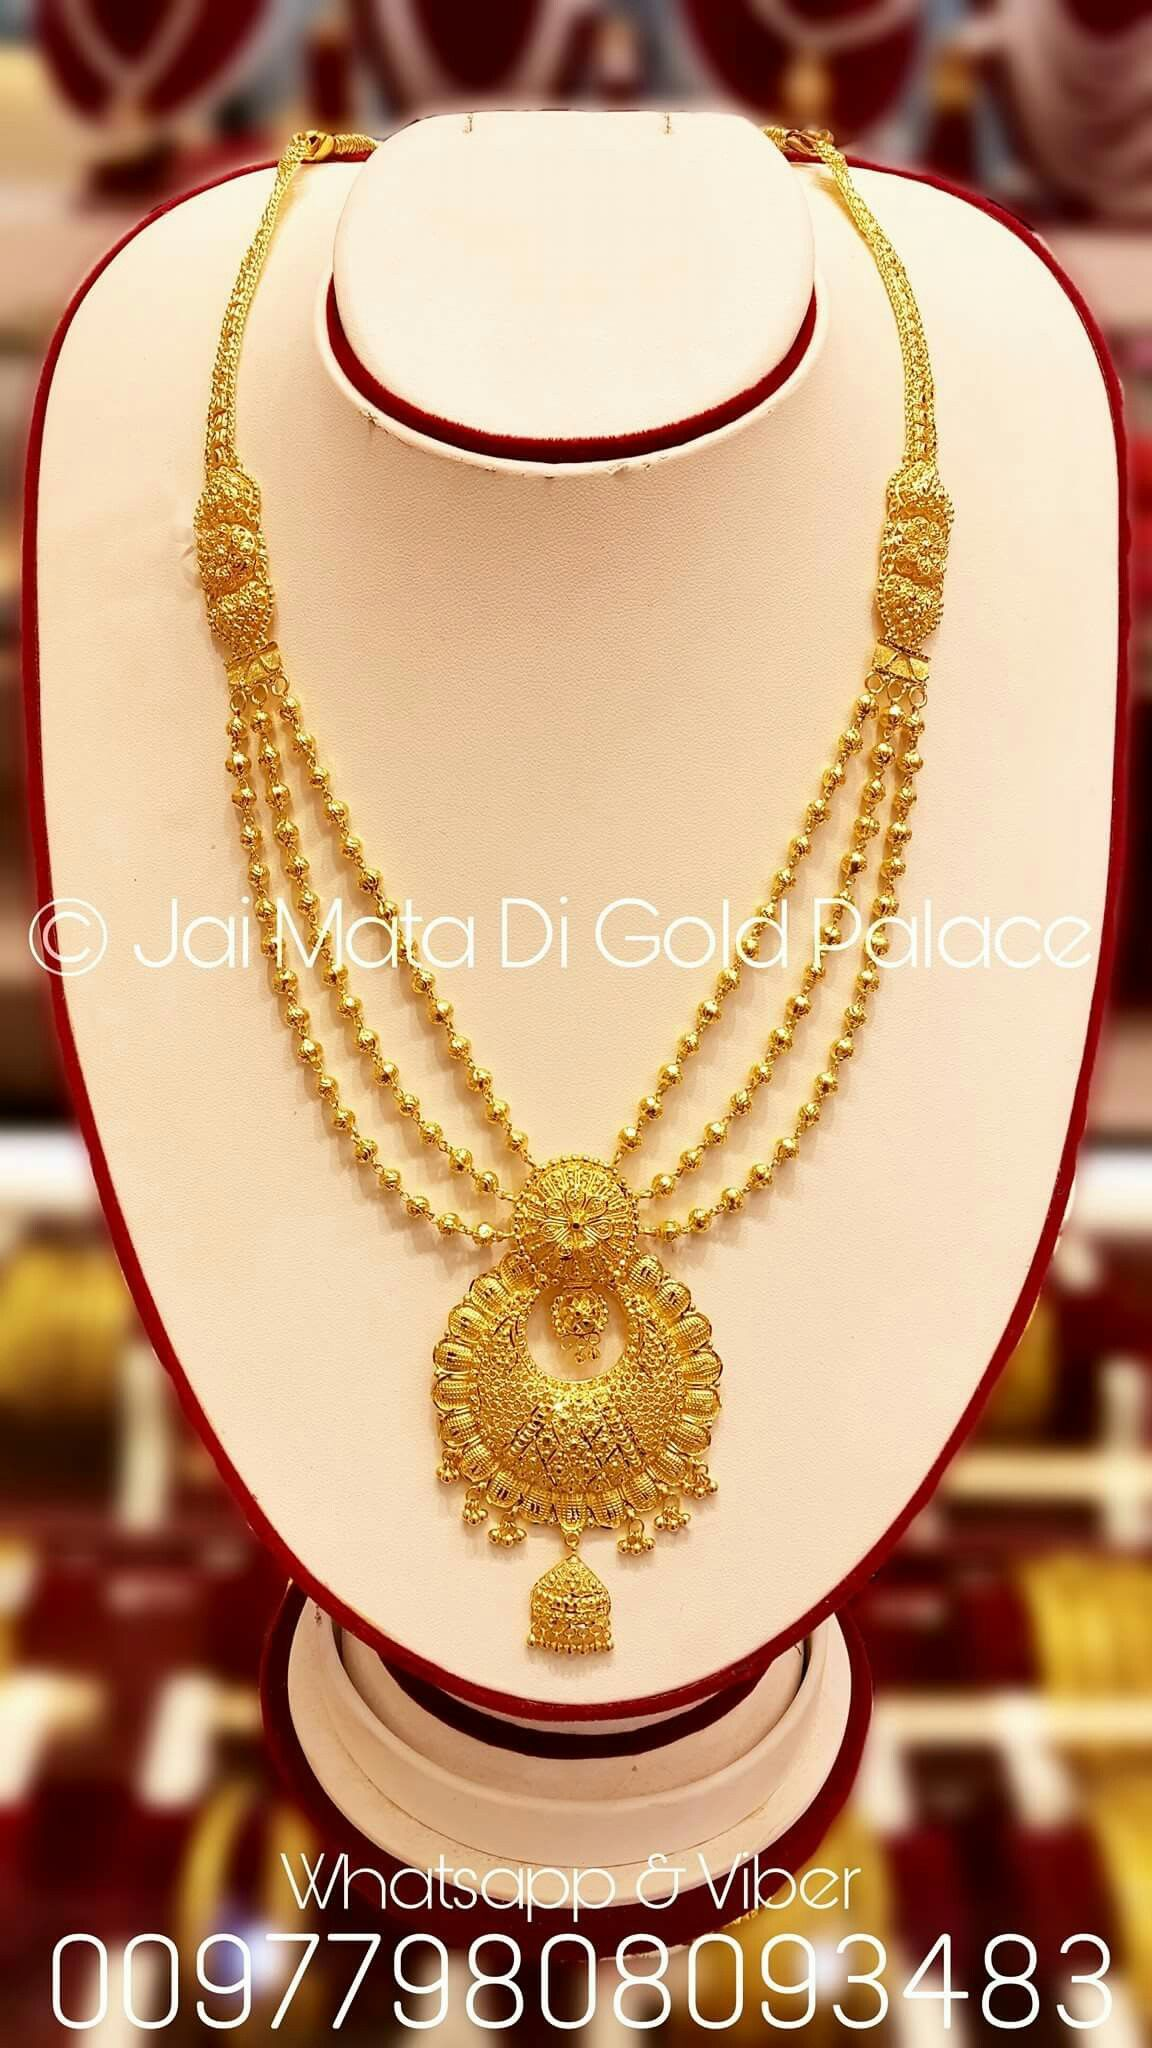 Bengali bridal gold jewellery - Bengali Bride Gold Necklace Pearl Necklaces Necklace Designs Gold Jewellery Jewelery Indian Jewelry Ear Cuffs Emeralds